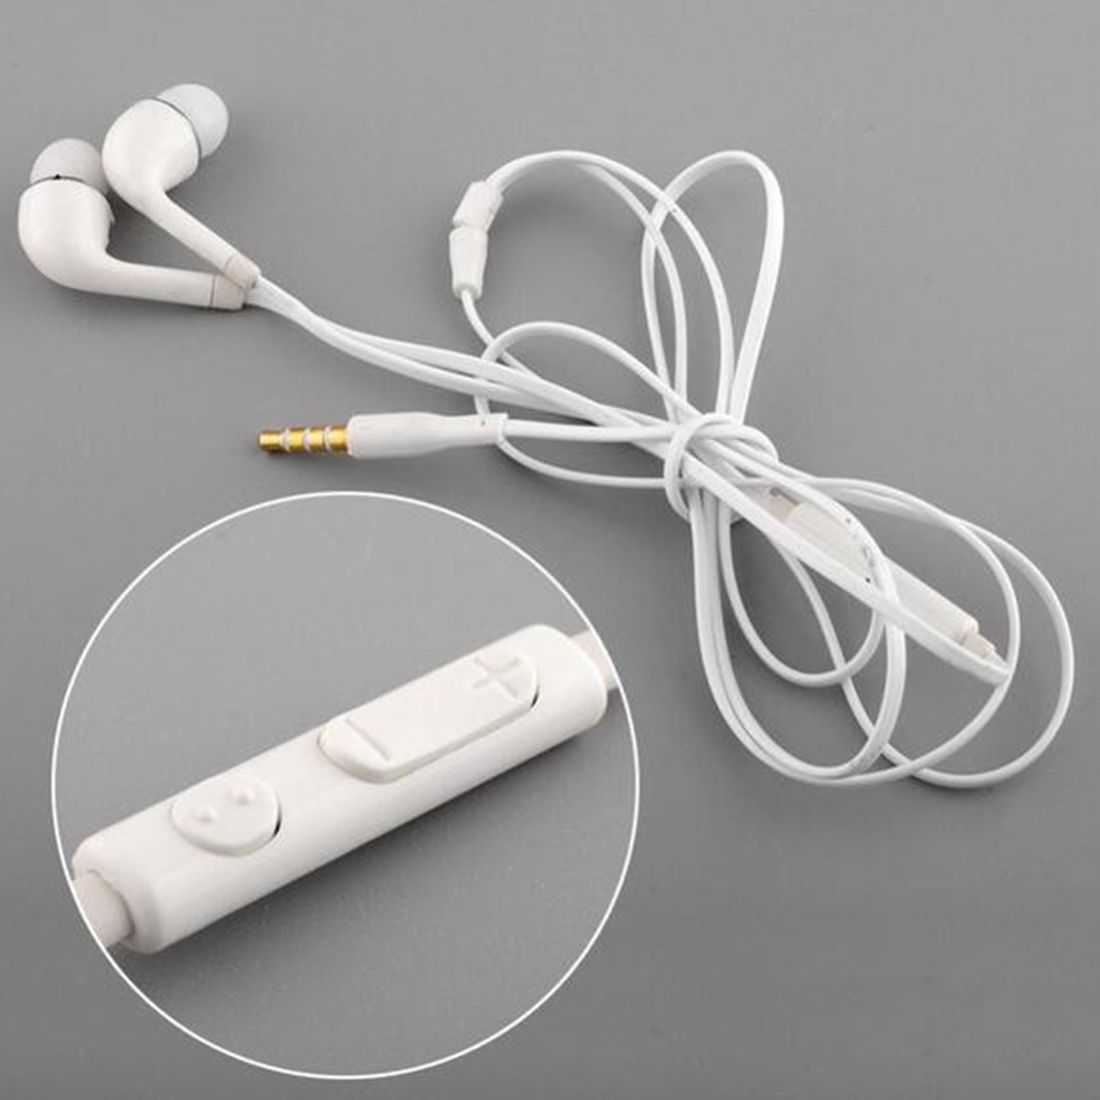 Marsnaska In-Ear Earphone With Mic Wired Control In Ear Earphone Phone Earphones For Samsung Galaxy S4 S3 S2 S5 s6 s7 Note 2 s6 3 5mm in ear earphones headset with mic volume control remote control for samsung galaxy s5 s4 s7 s6 note 5 4 3 xiaomi 2